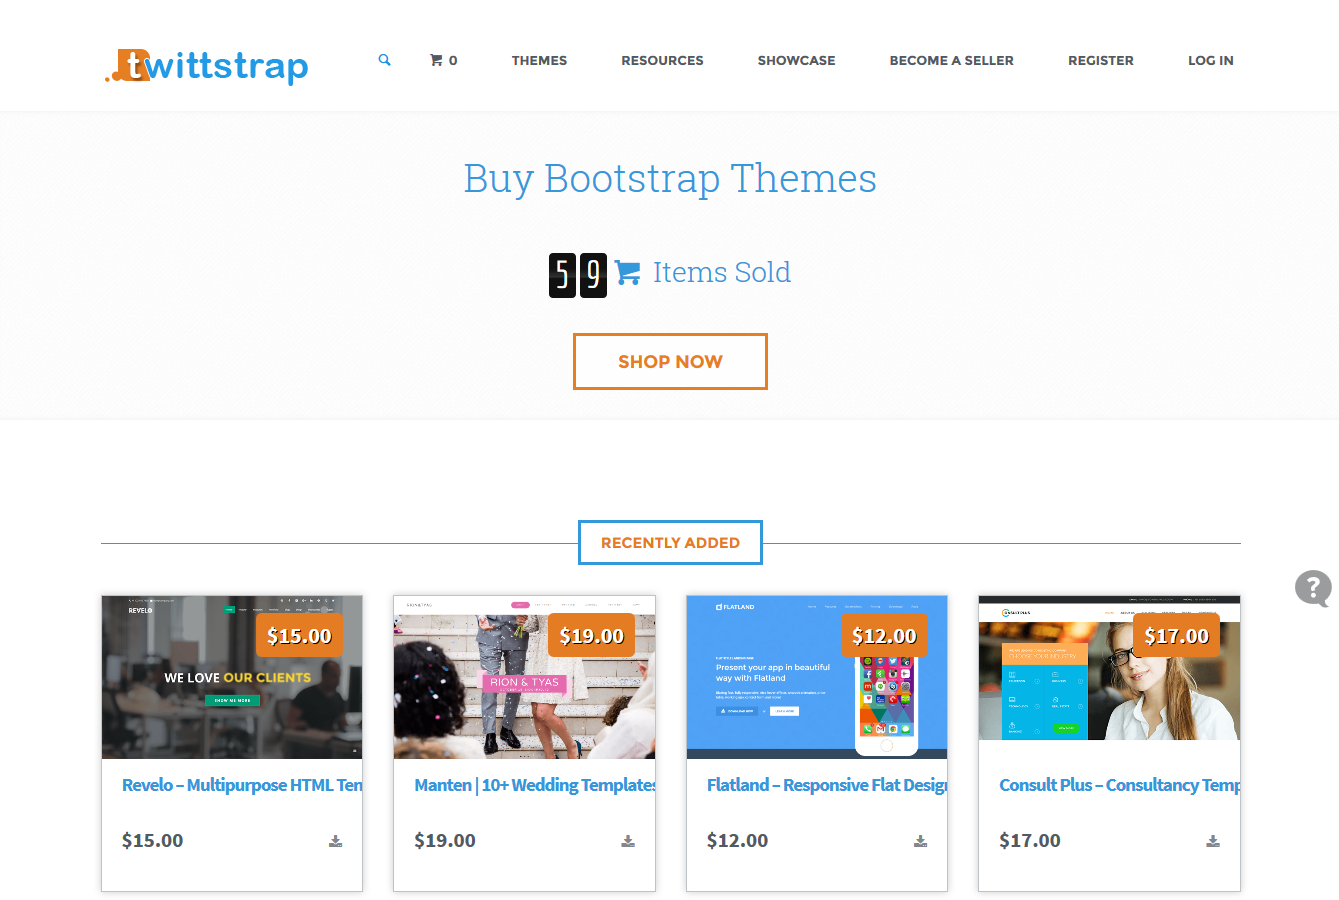 10 best bootstrap themes templates marketplaces to buy and sell twittstrap is a marketplace where you can buy and sell bootstrap themes and foundation templates you will always find your favorite resources and browse maxwellsz